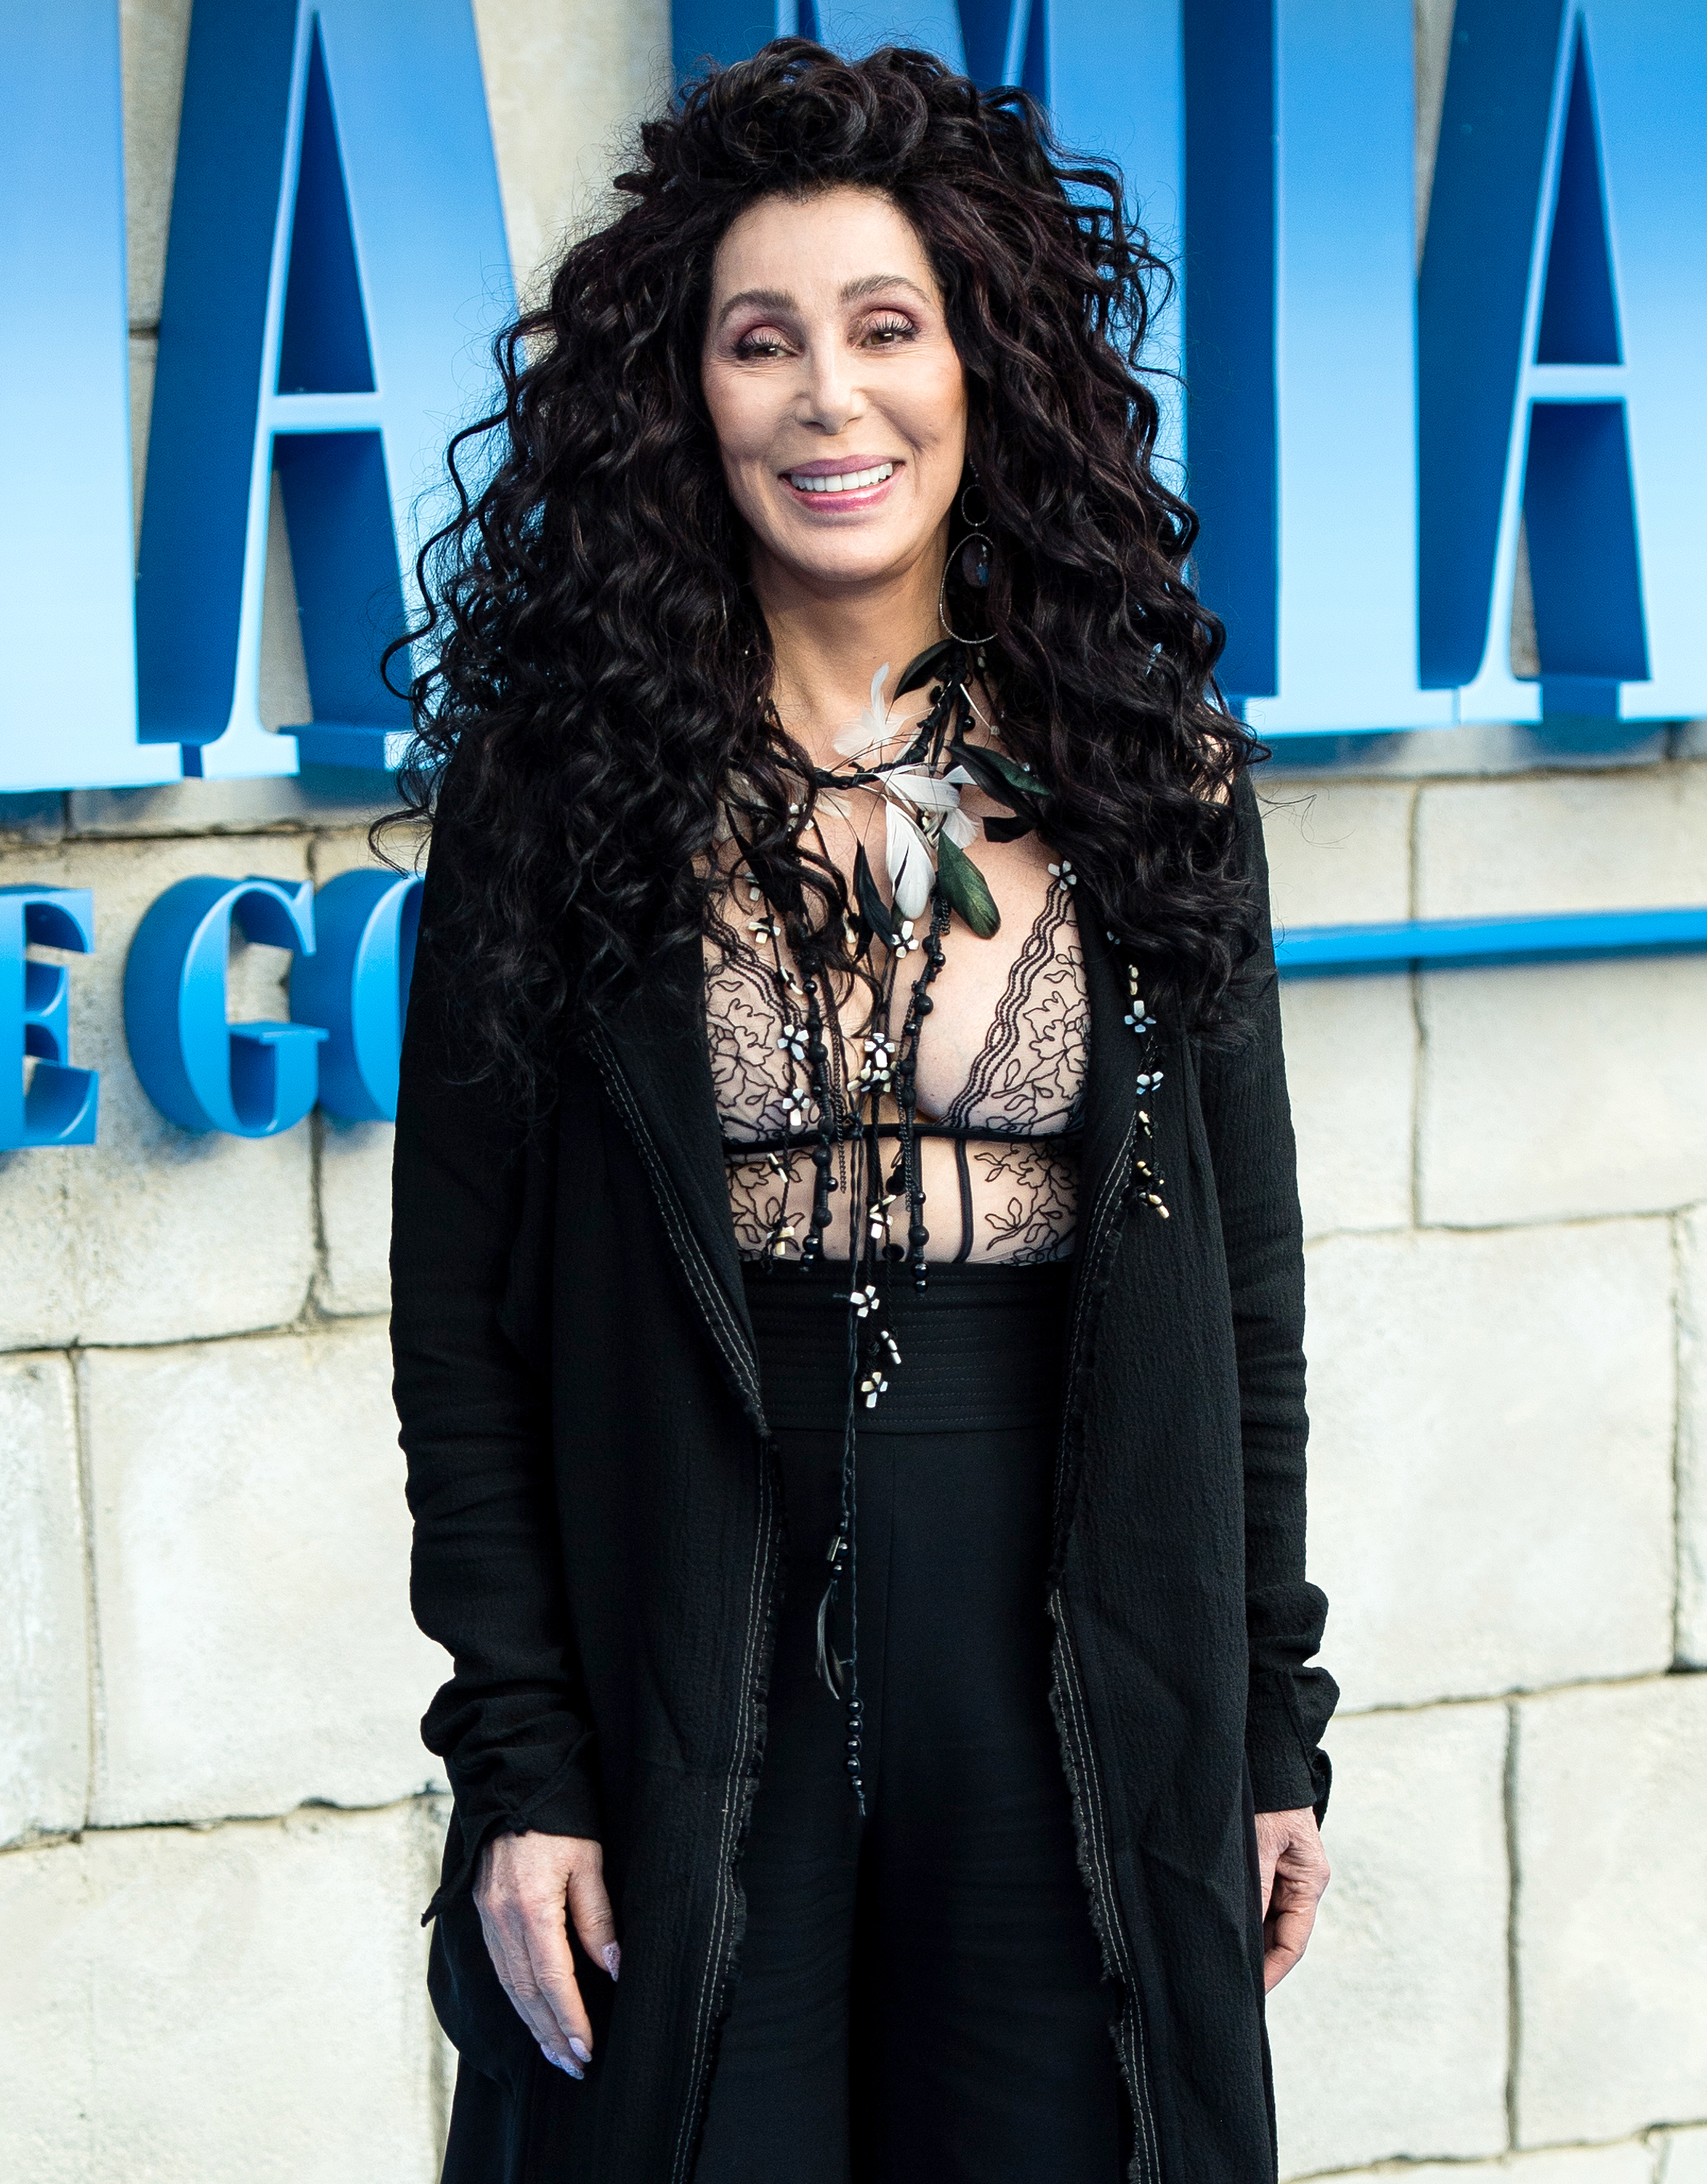 """Cher Through The Years - Cher made a brief (but memorable!) appearance at the end of Mamma Mia! Here We Go Again as she sang ABBA's """"Fernando"""" to her onscreen lover, played by Andy García ."""